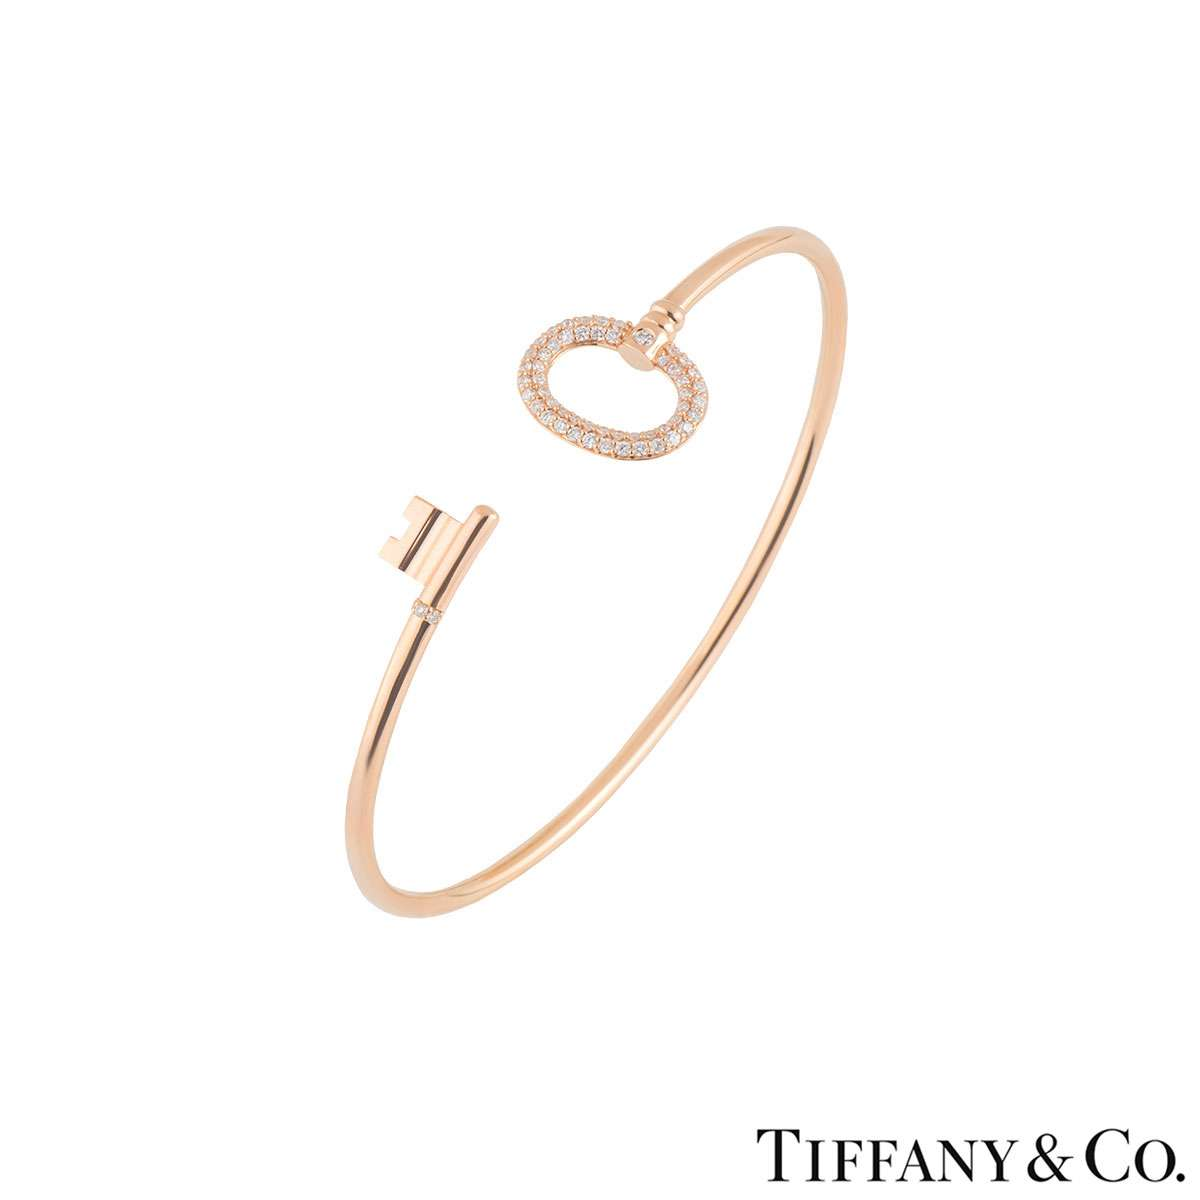 Tiffany & Co. Keys Rose Gold Wire Bracelet